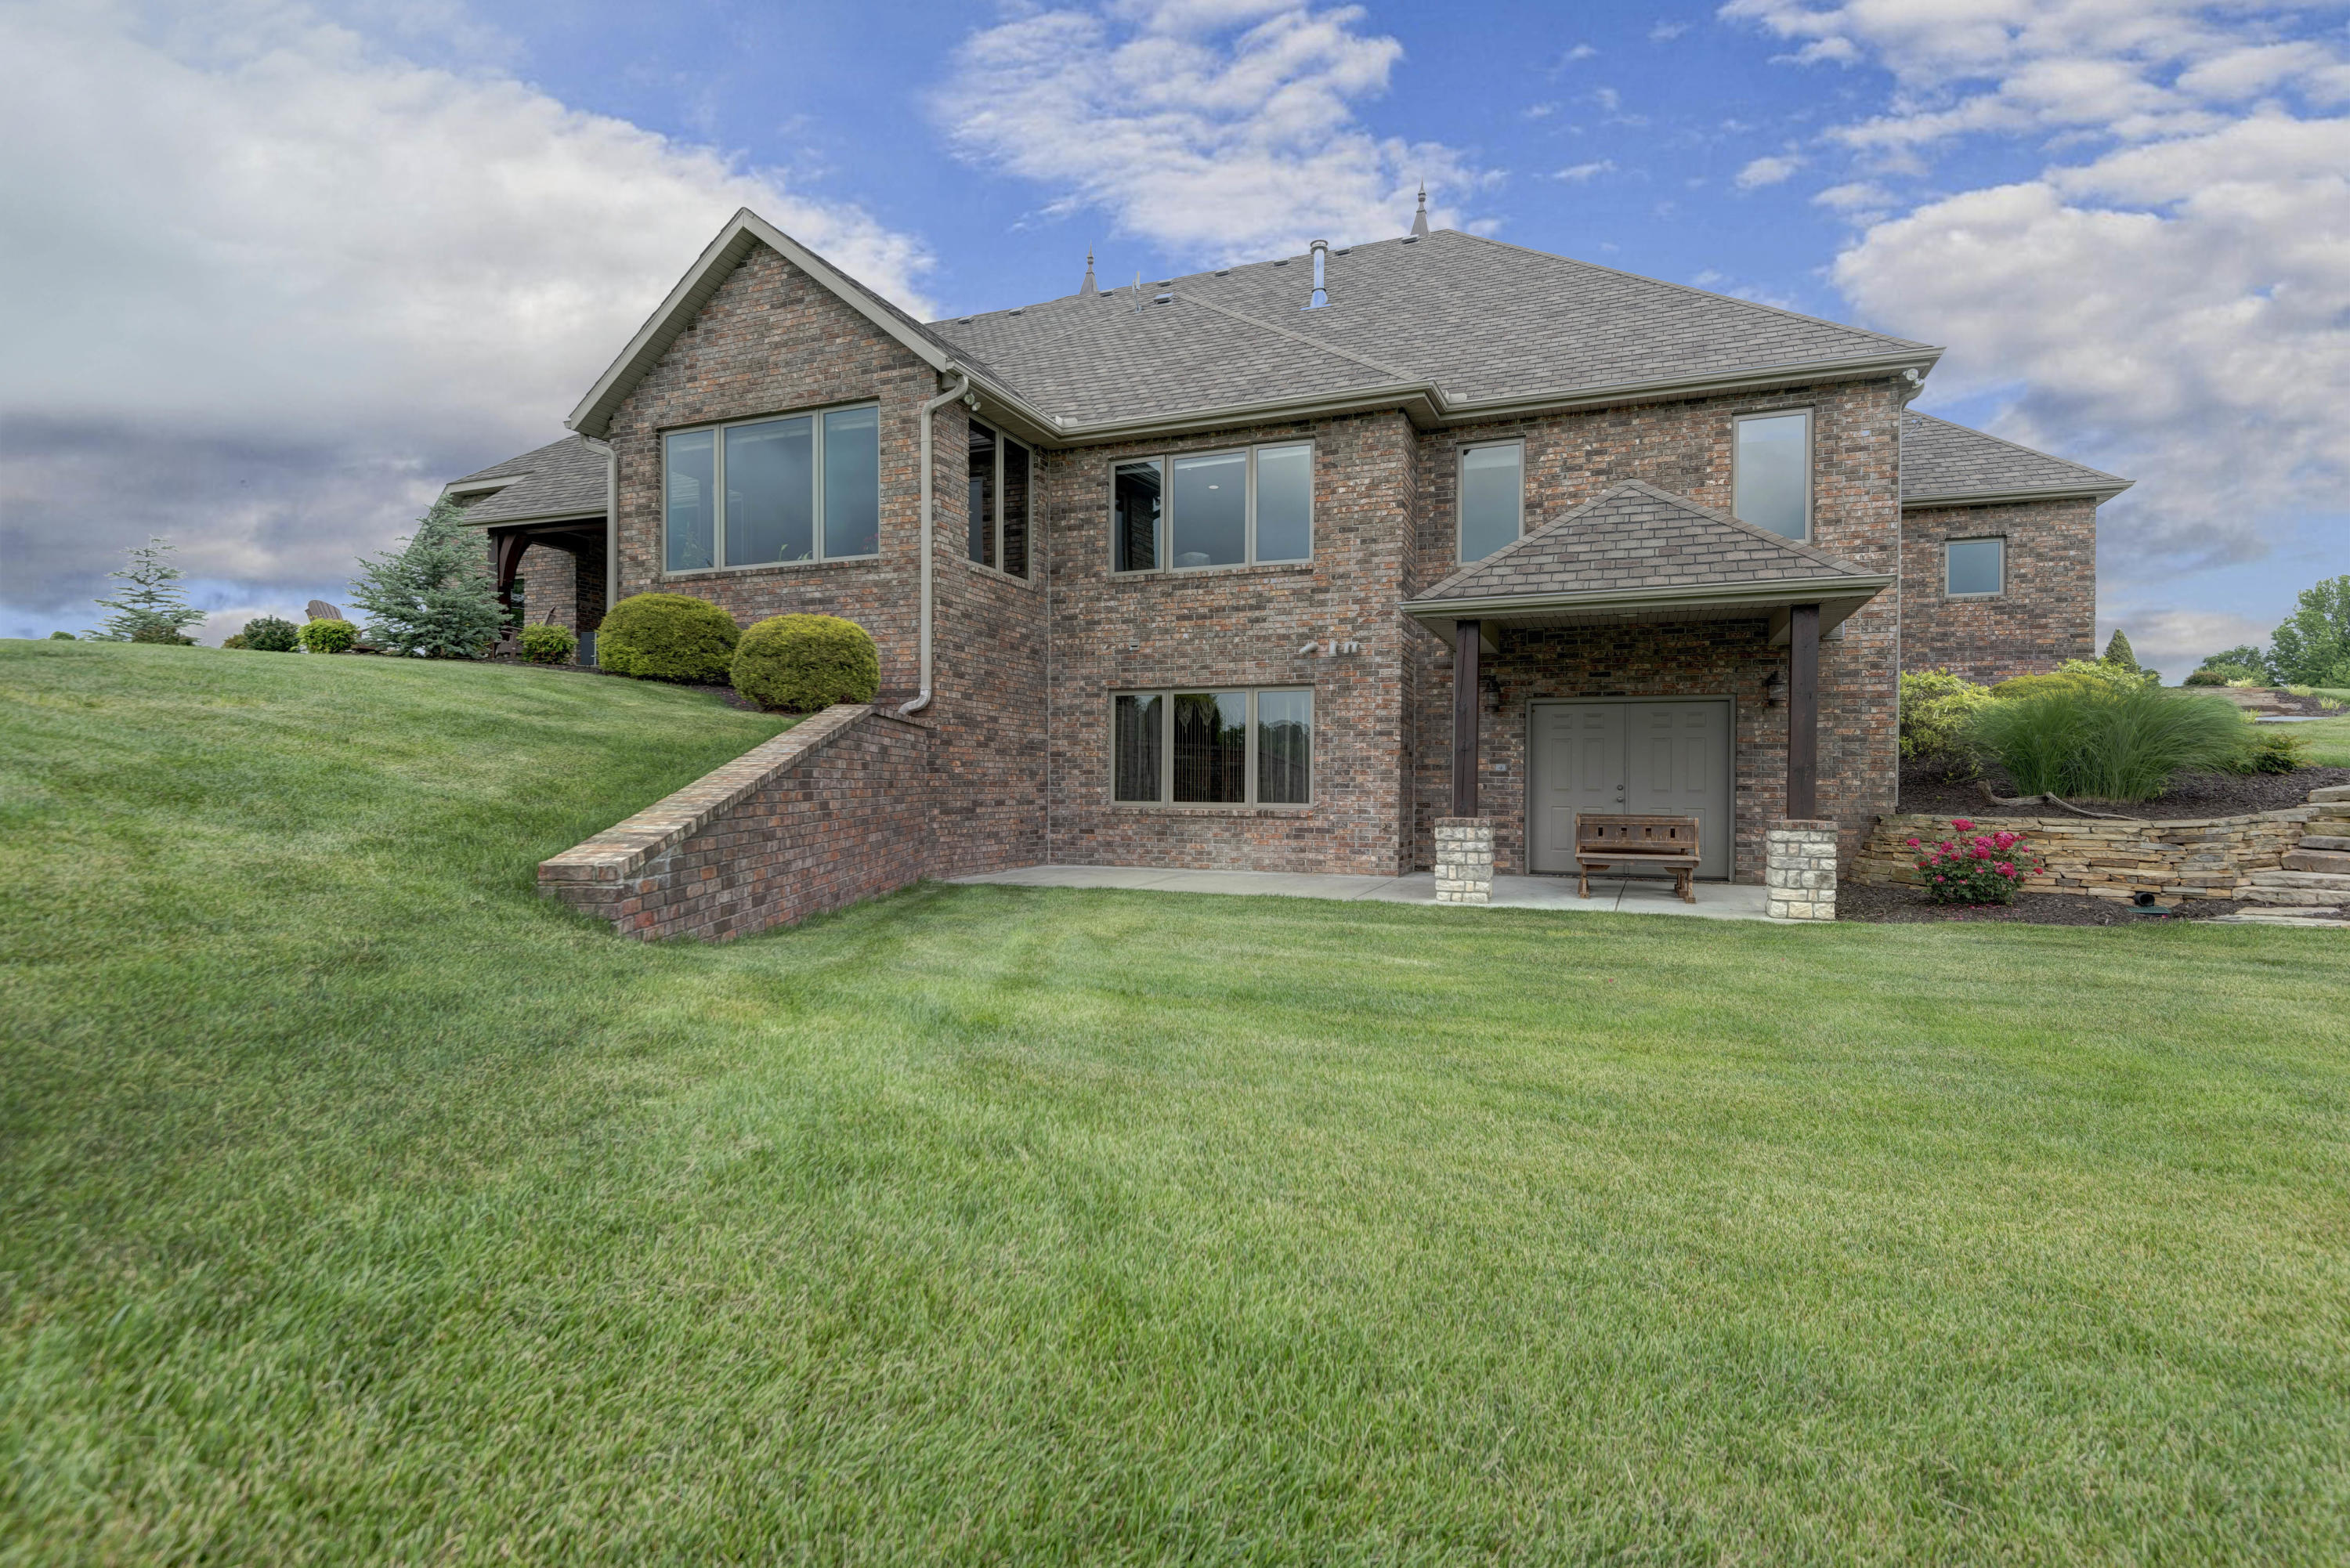 863 North State Hwy Springfield, MO 65802